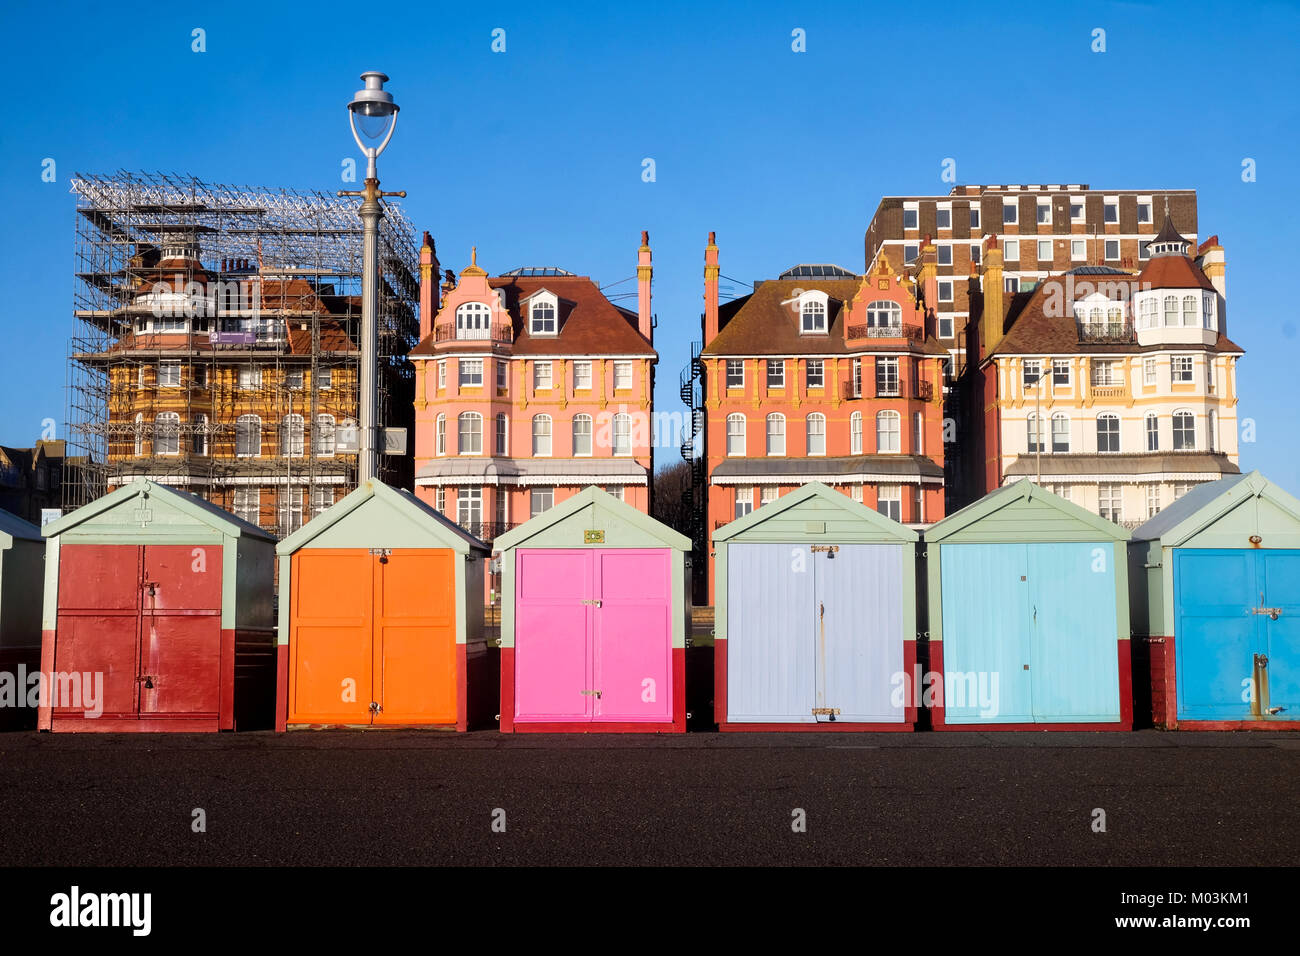 Brighton seafront 7 multi beach huts, behind is blue sky and three very ornate victorian buildings one of the buildings - Stock Image